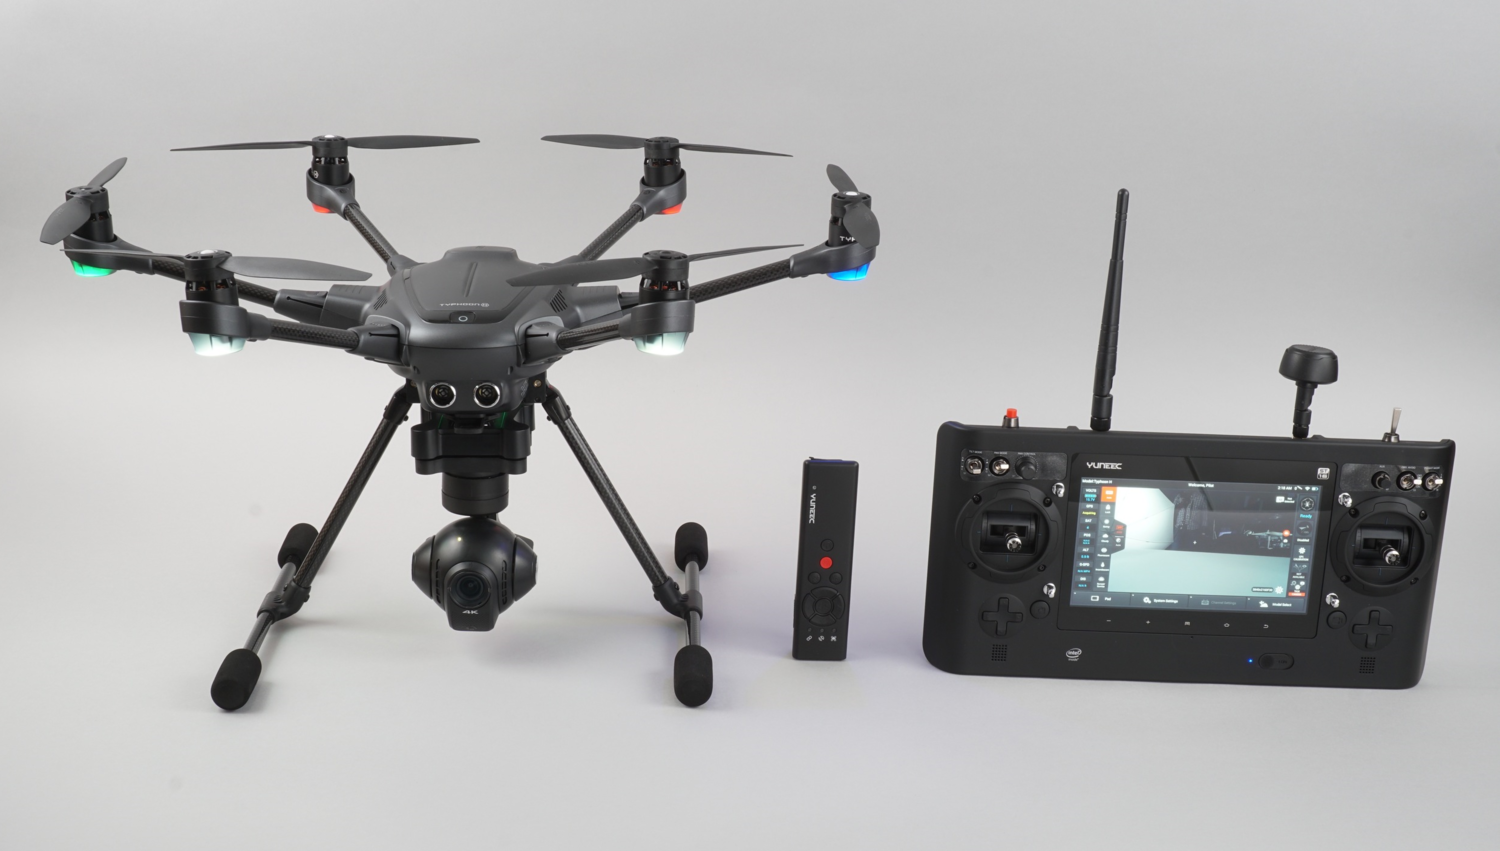 Typhoon H, Wizard Remote, and Main Controller